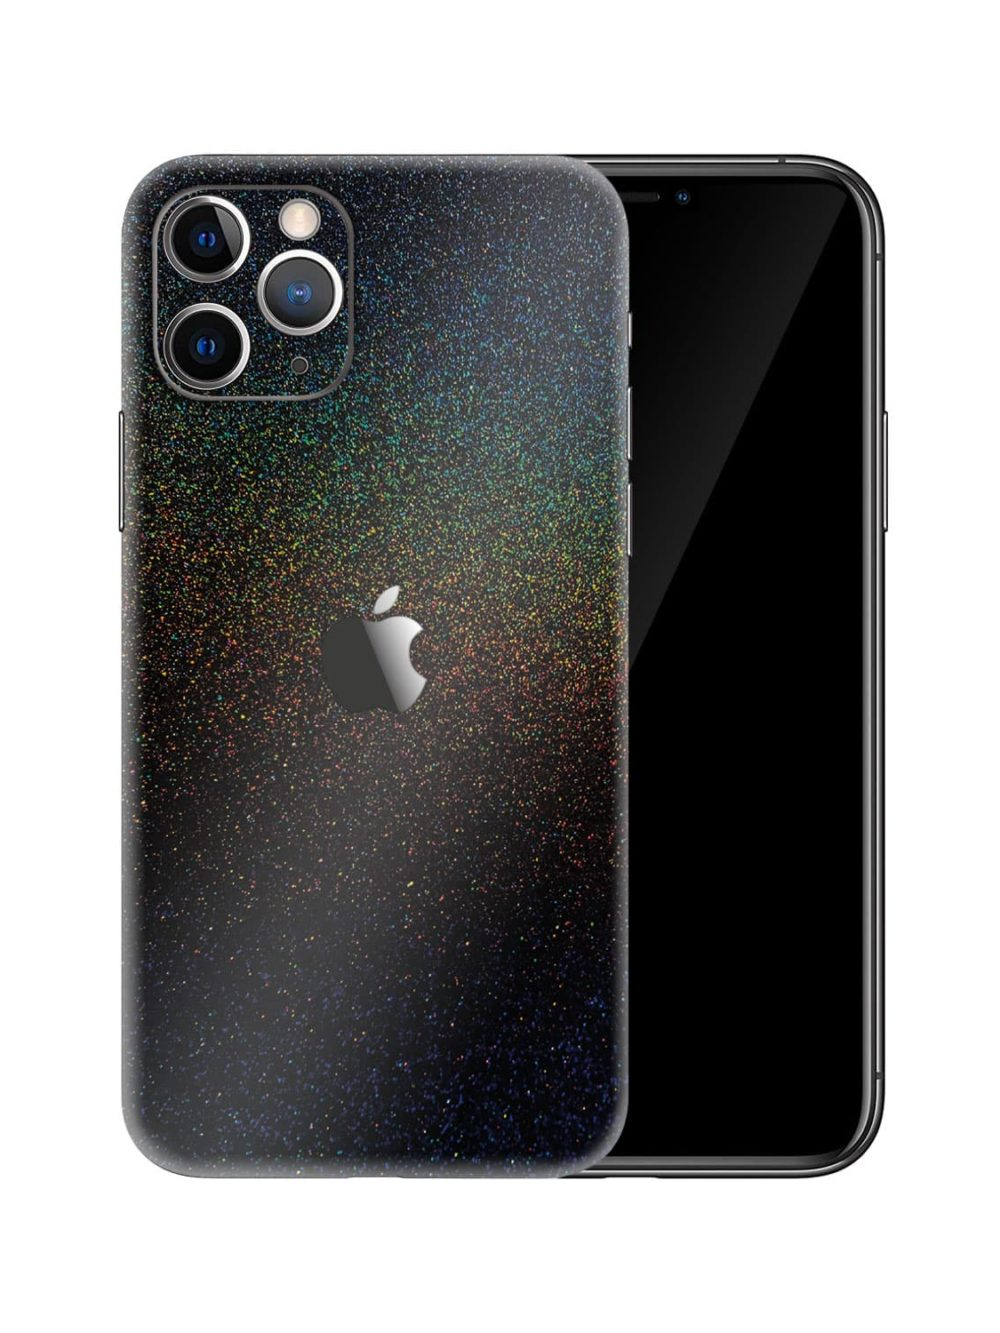 Apple iPhone 11 Pro Max Gloss Cosmic Morpheus Black Skin Wrap